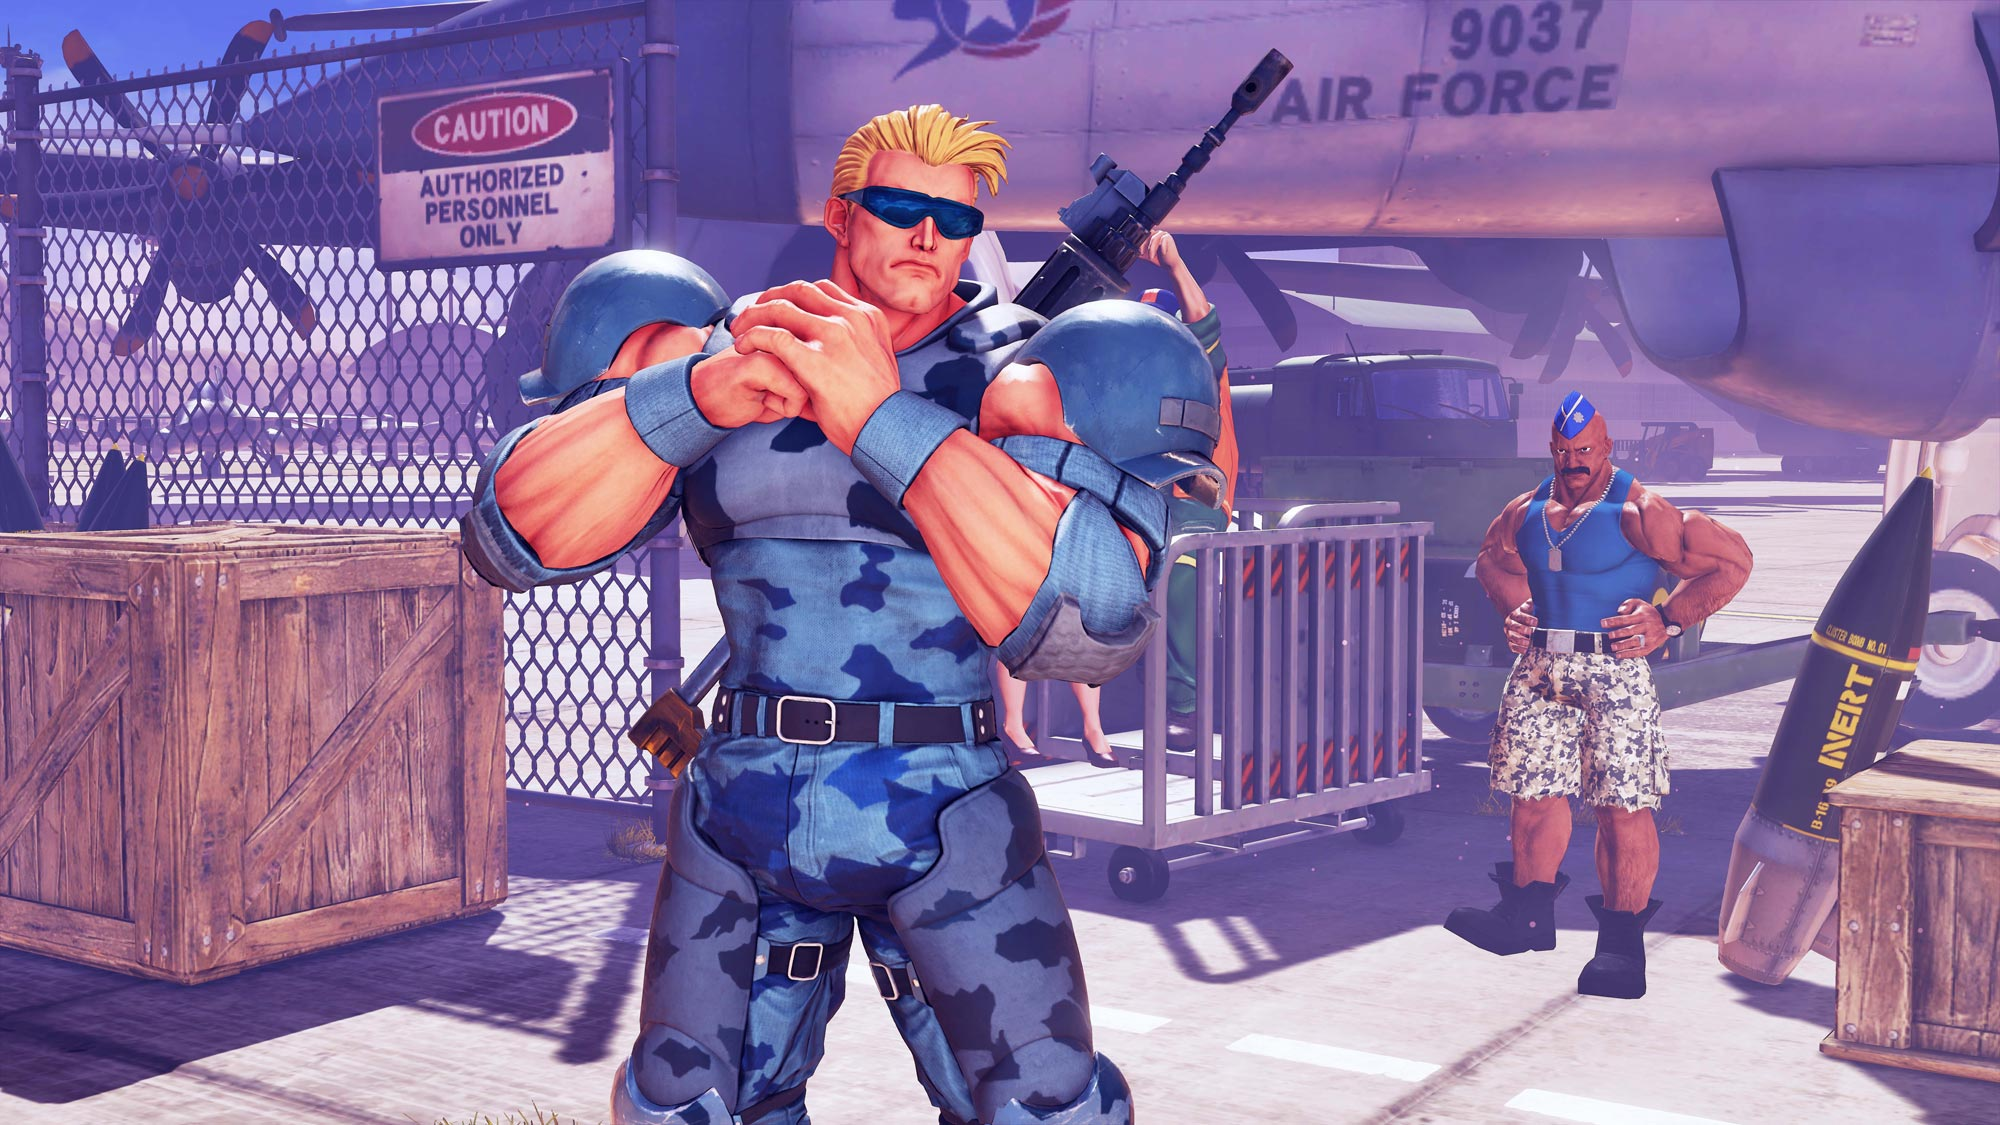 Guile Cross over costume - The Nameless Super Soldier 4 out of 7 image gallery